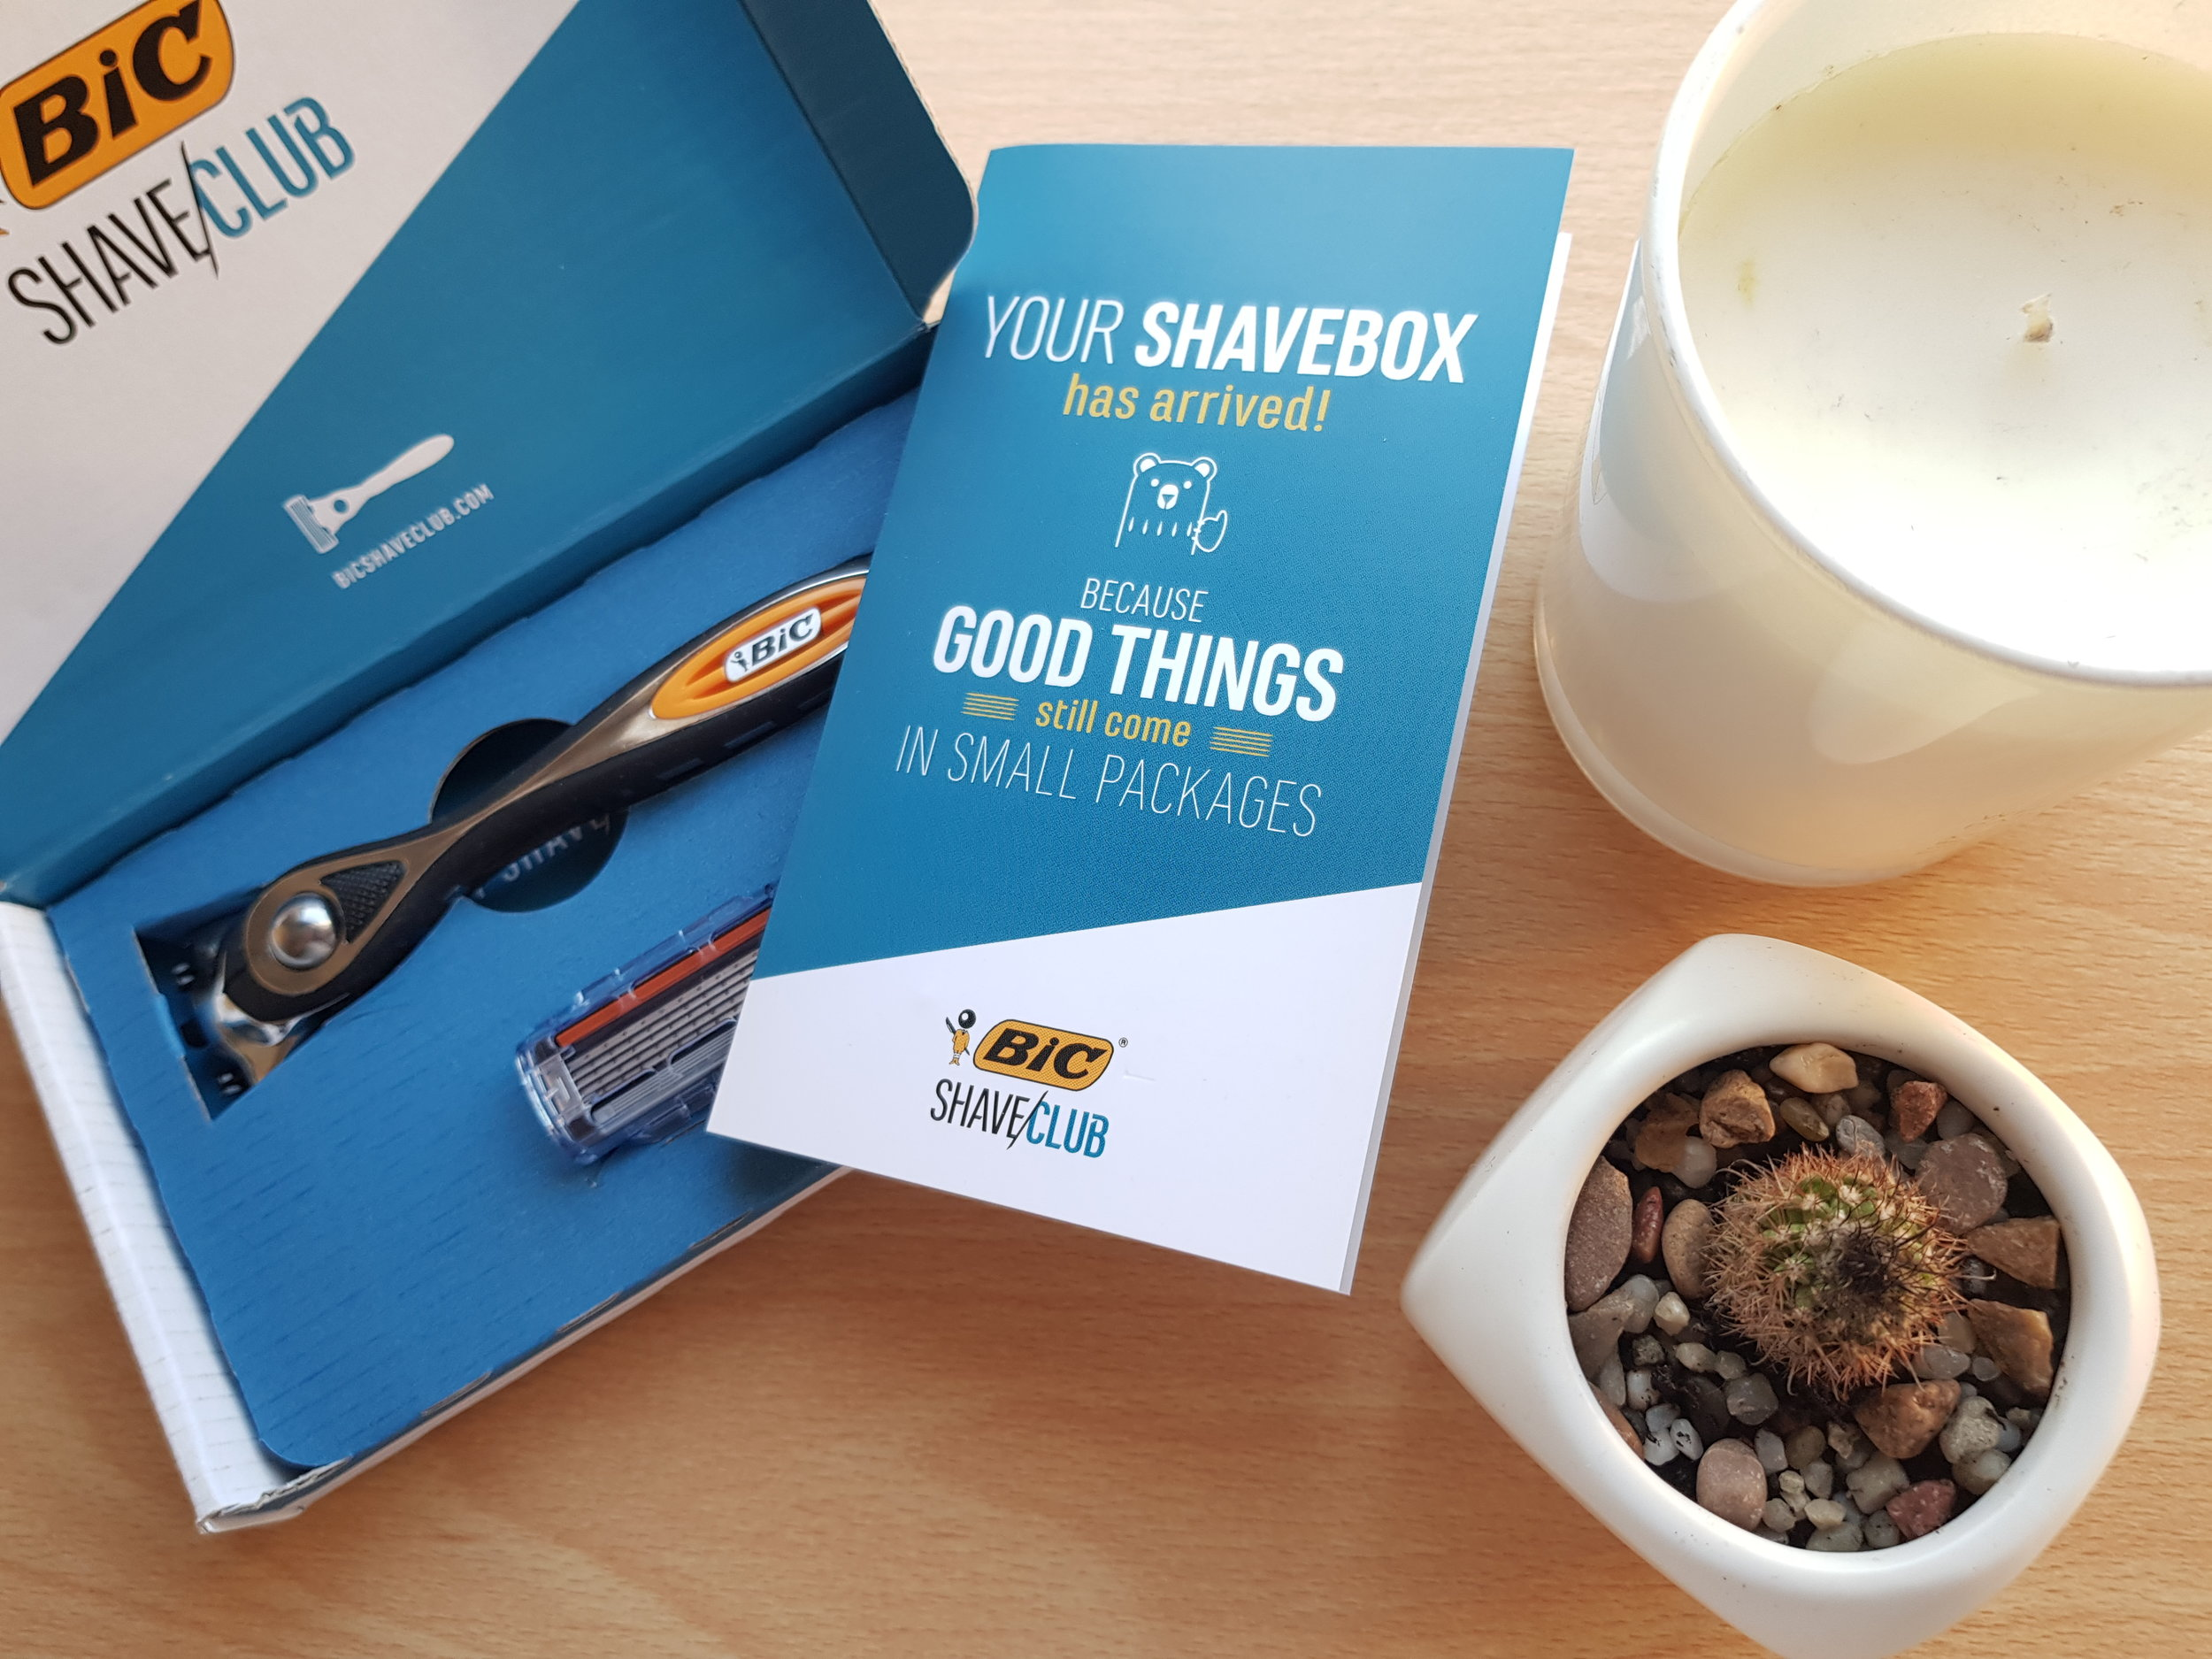 Bic shave club Me Becoming Mum's Christmas Gift Ideas for Him